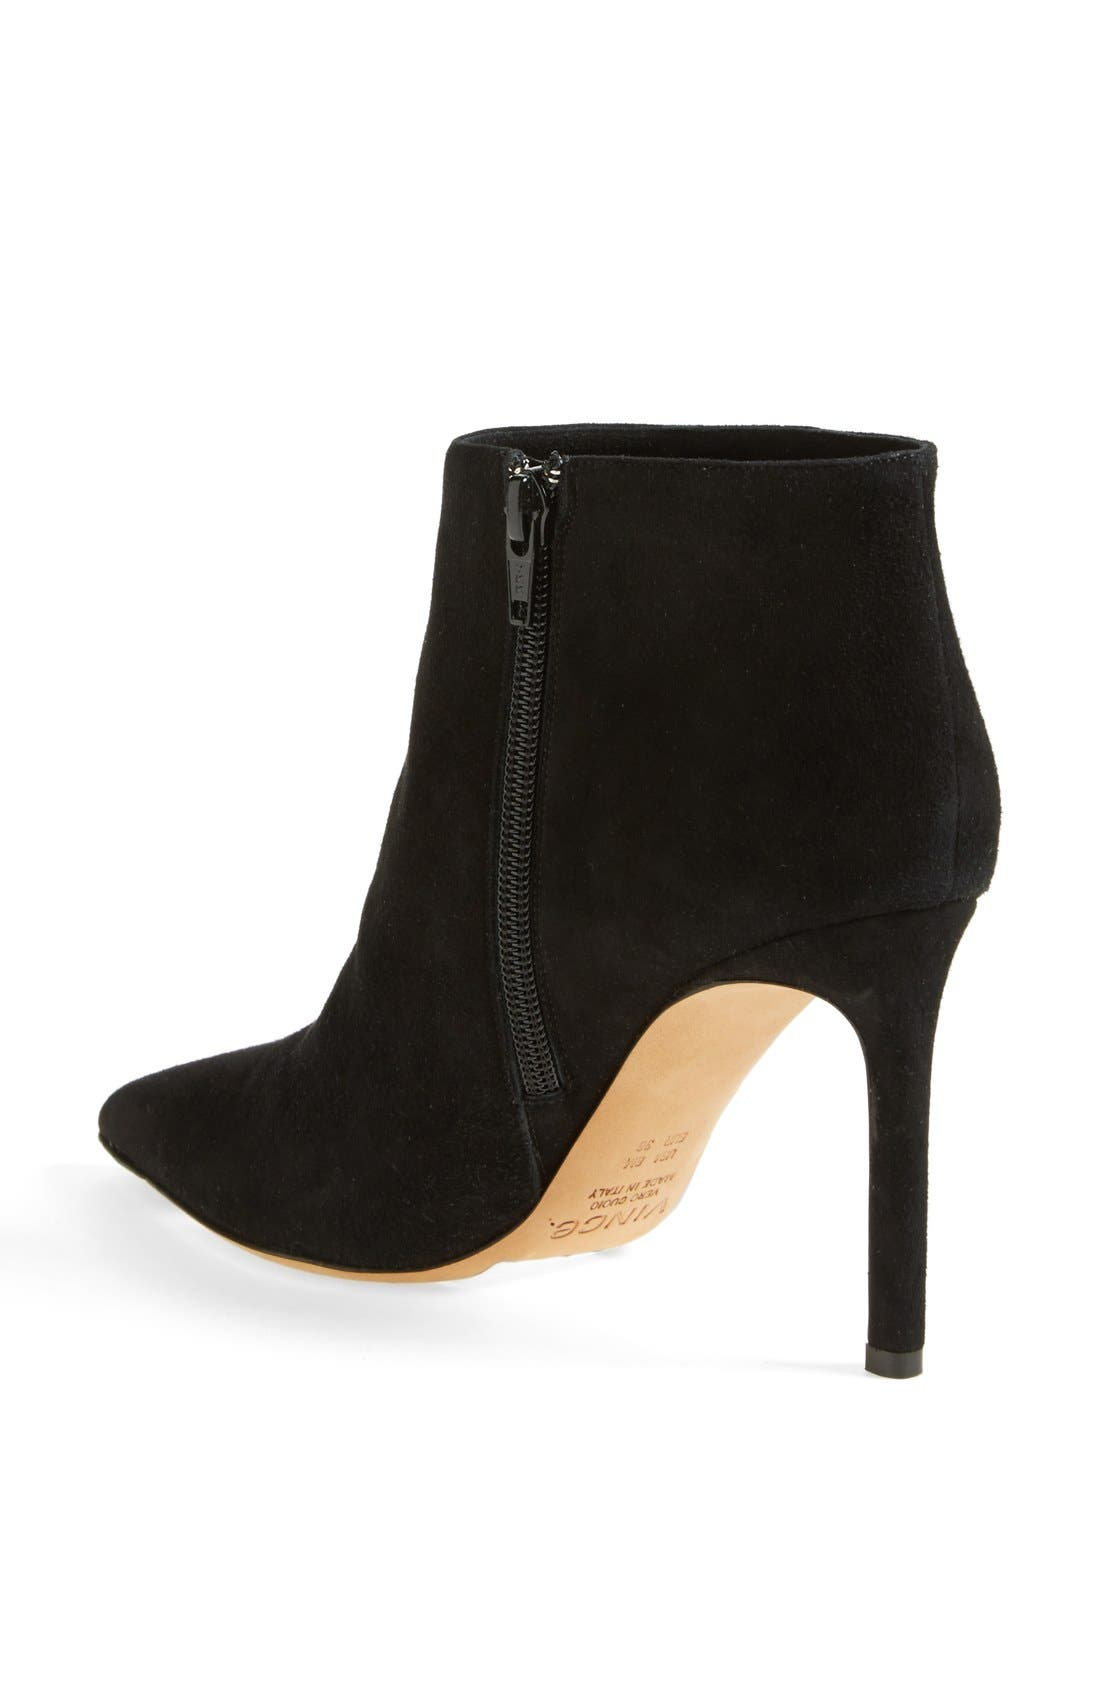 'Chara' Leather Bootie,                             Alternate thumbnail 4, color,                             002